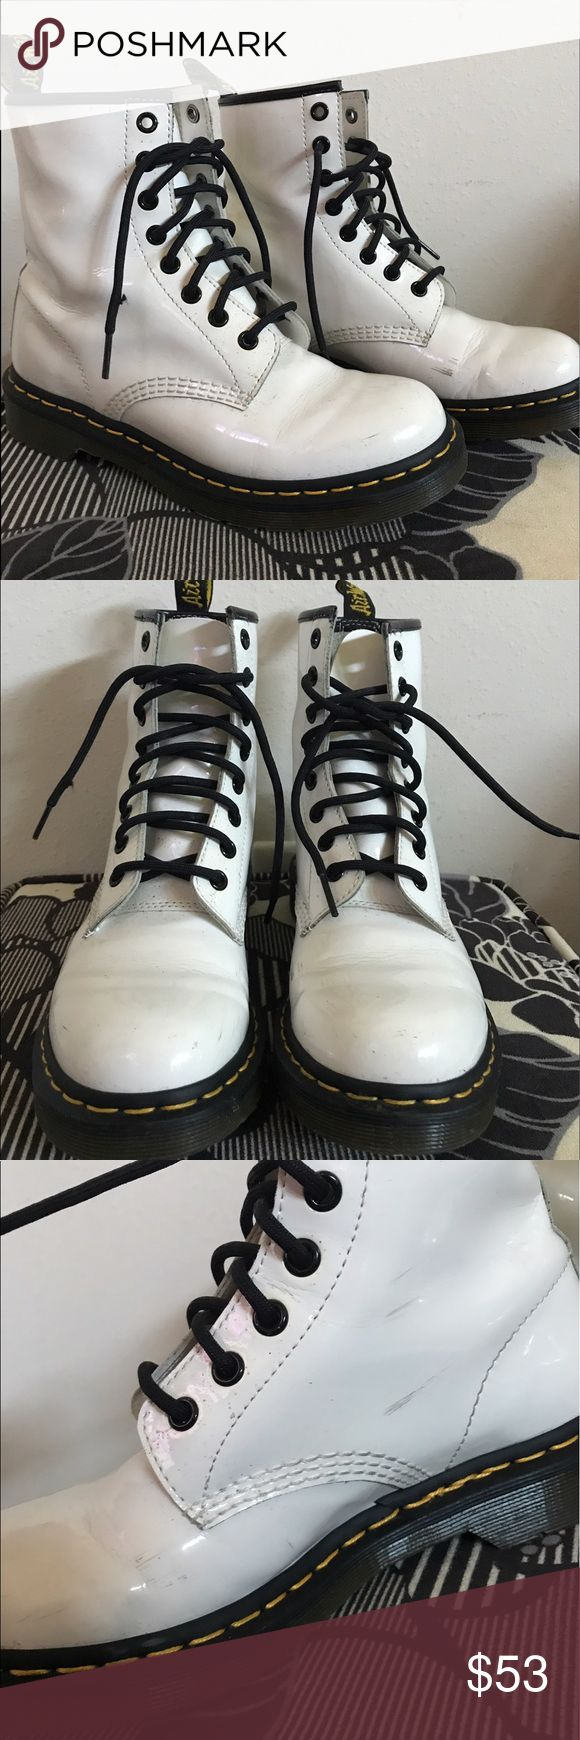 White Dr. Marten Boots Worn a handful of times for hip hop dance performances; few scuffs pictured; good condition Dr. Martens Shoes